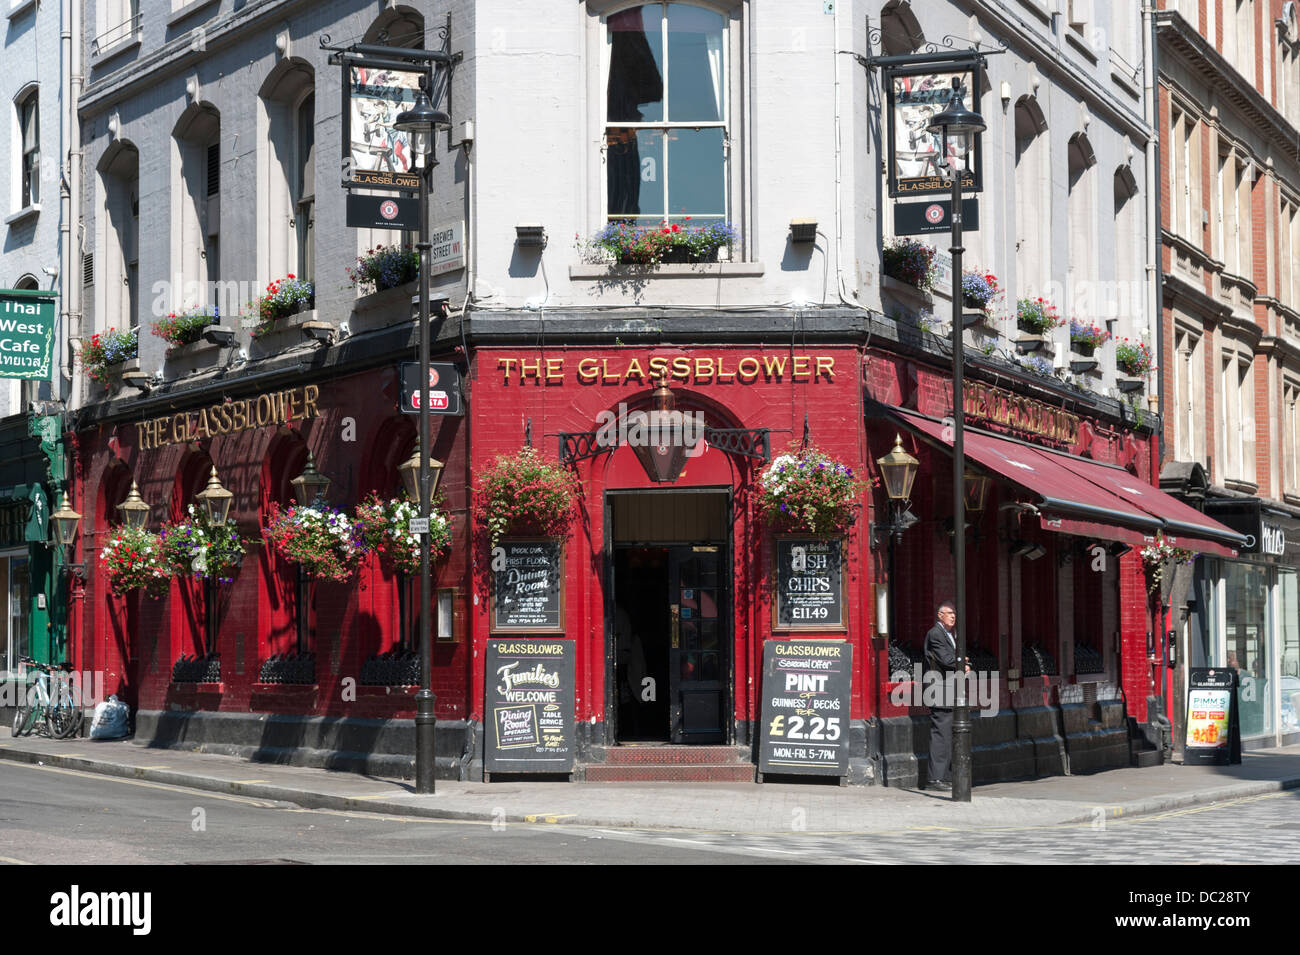 The Glassblower London Pub on Glasshouse Street London UK - Stock Image